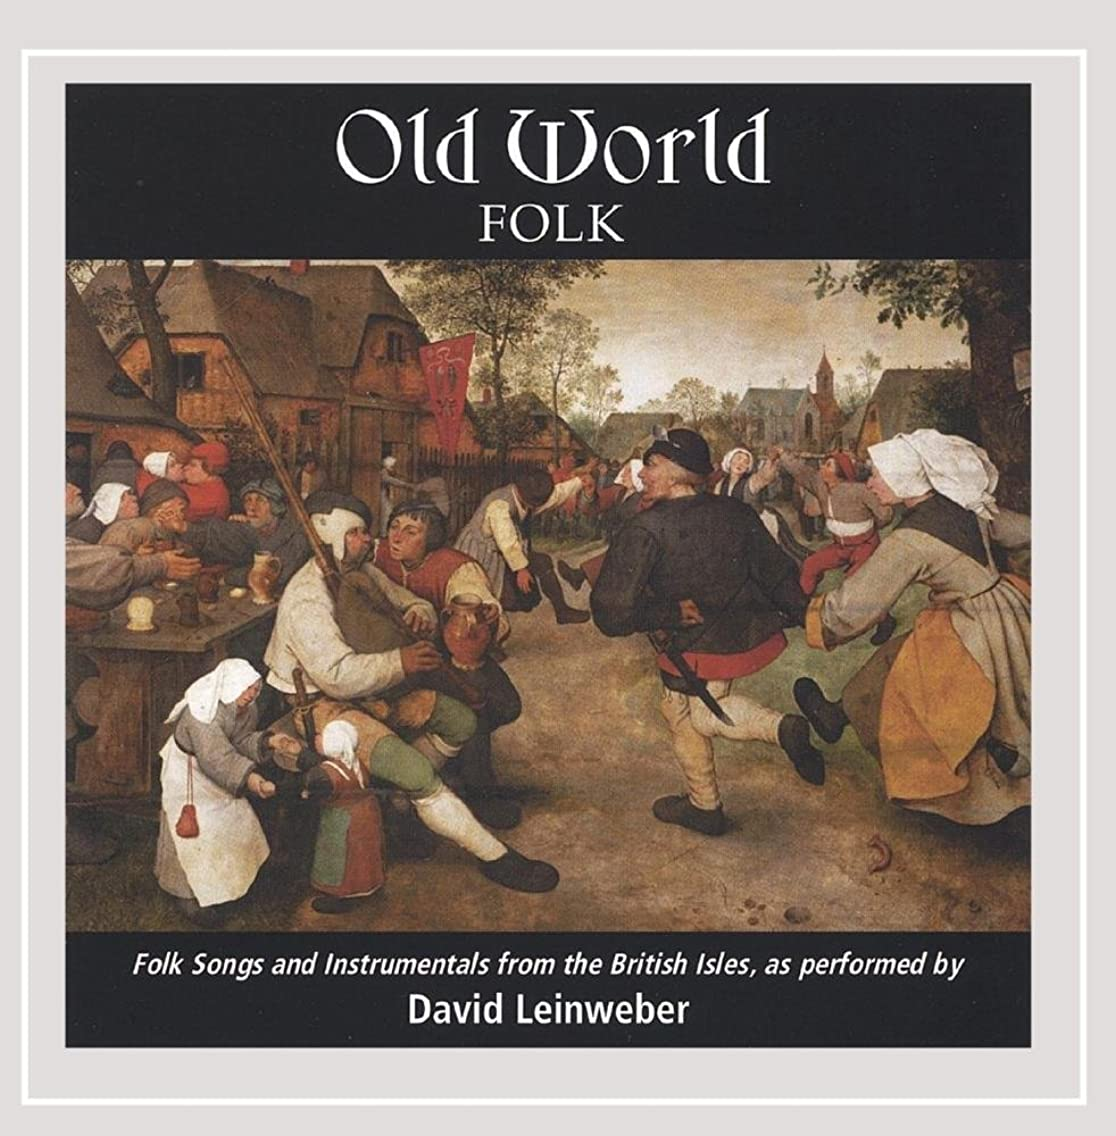 Old World Folk: Folk Songs and Instrumentals From the British Isles